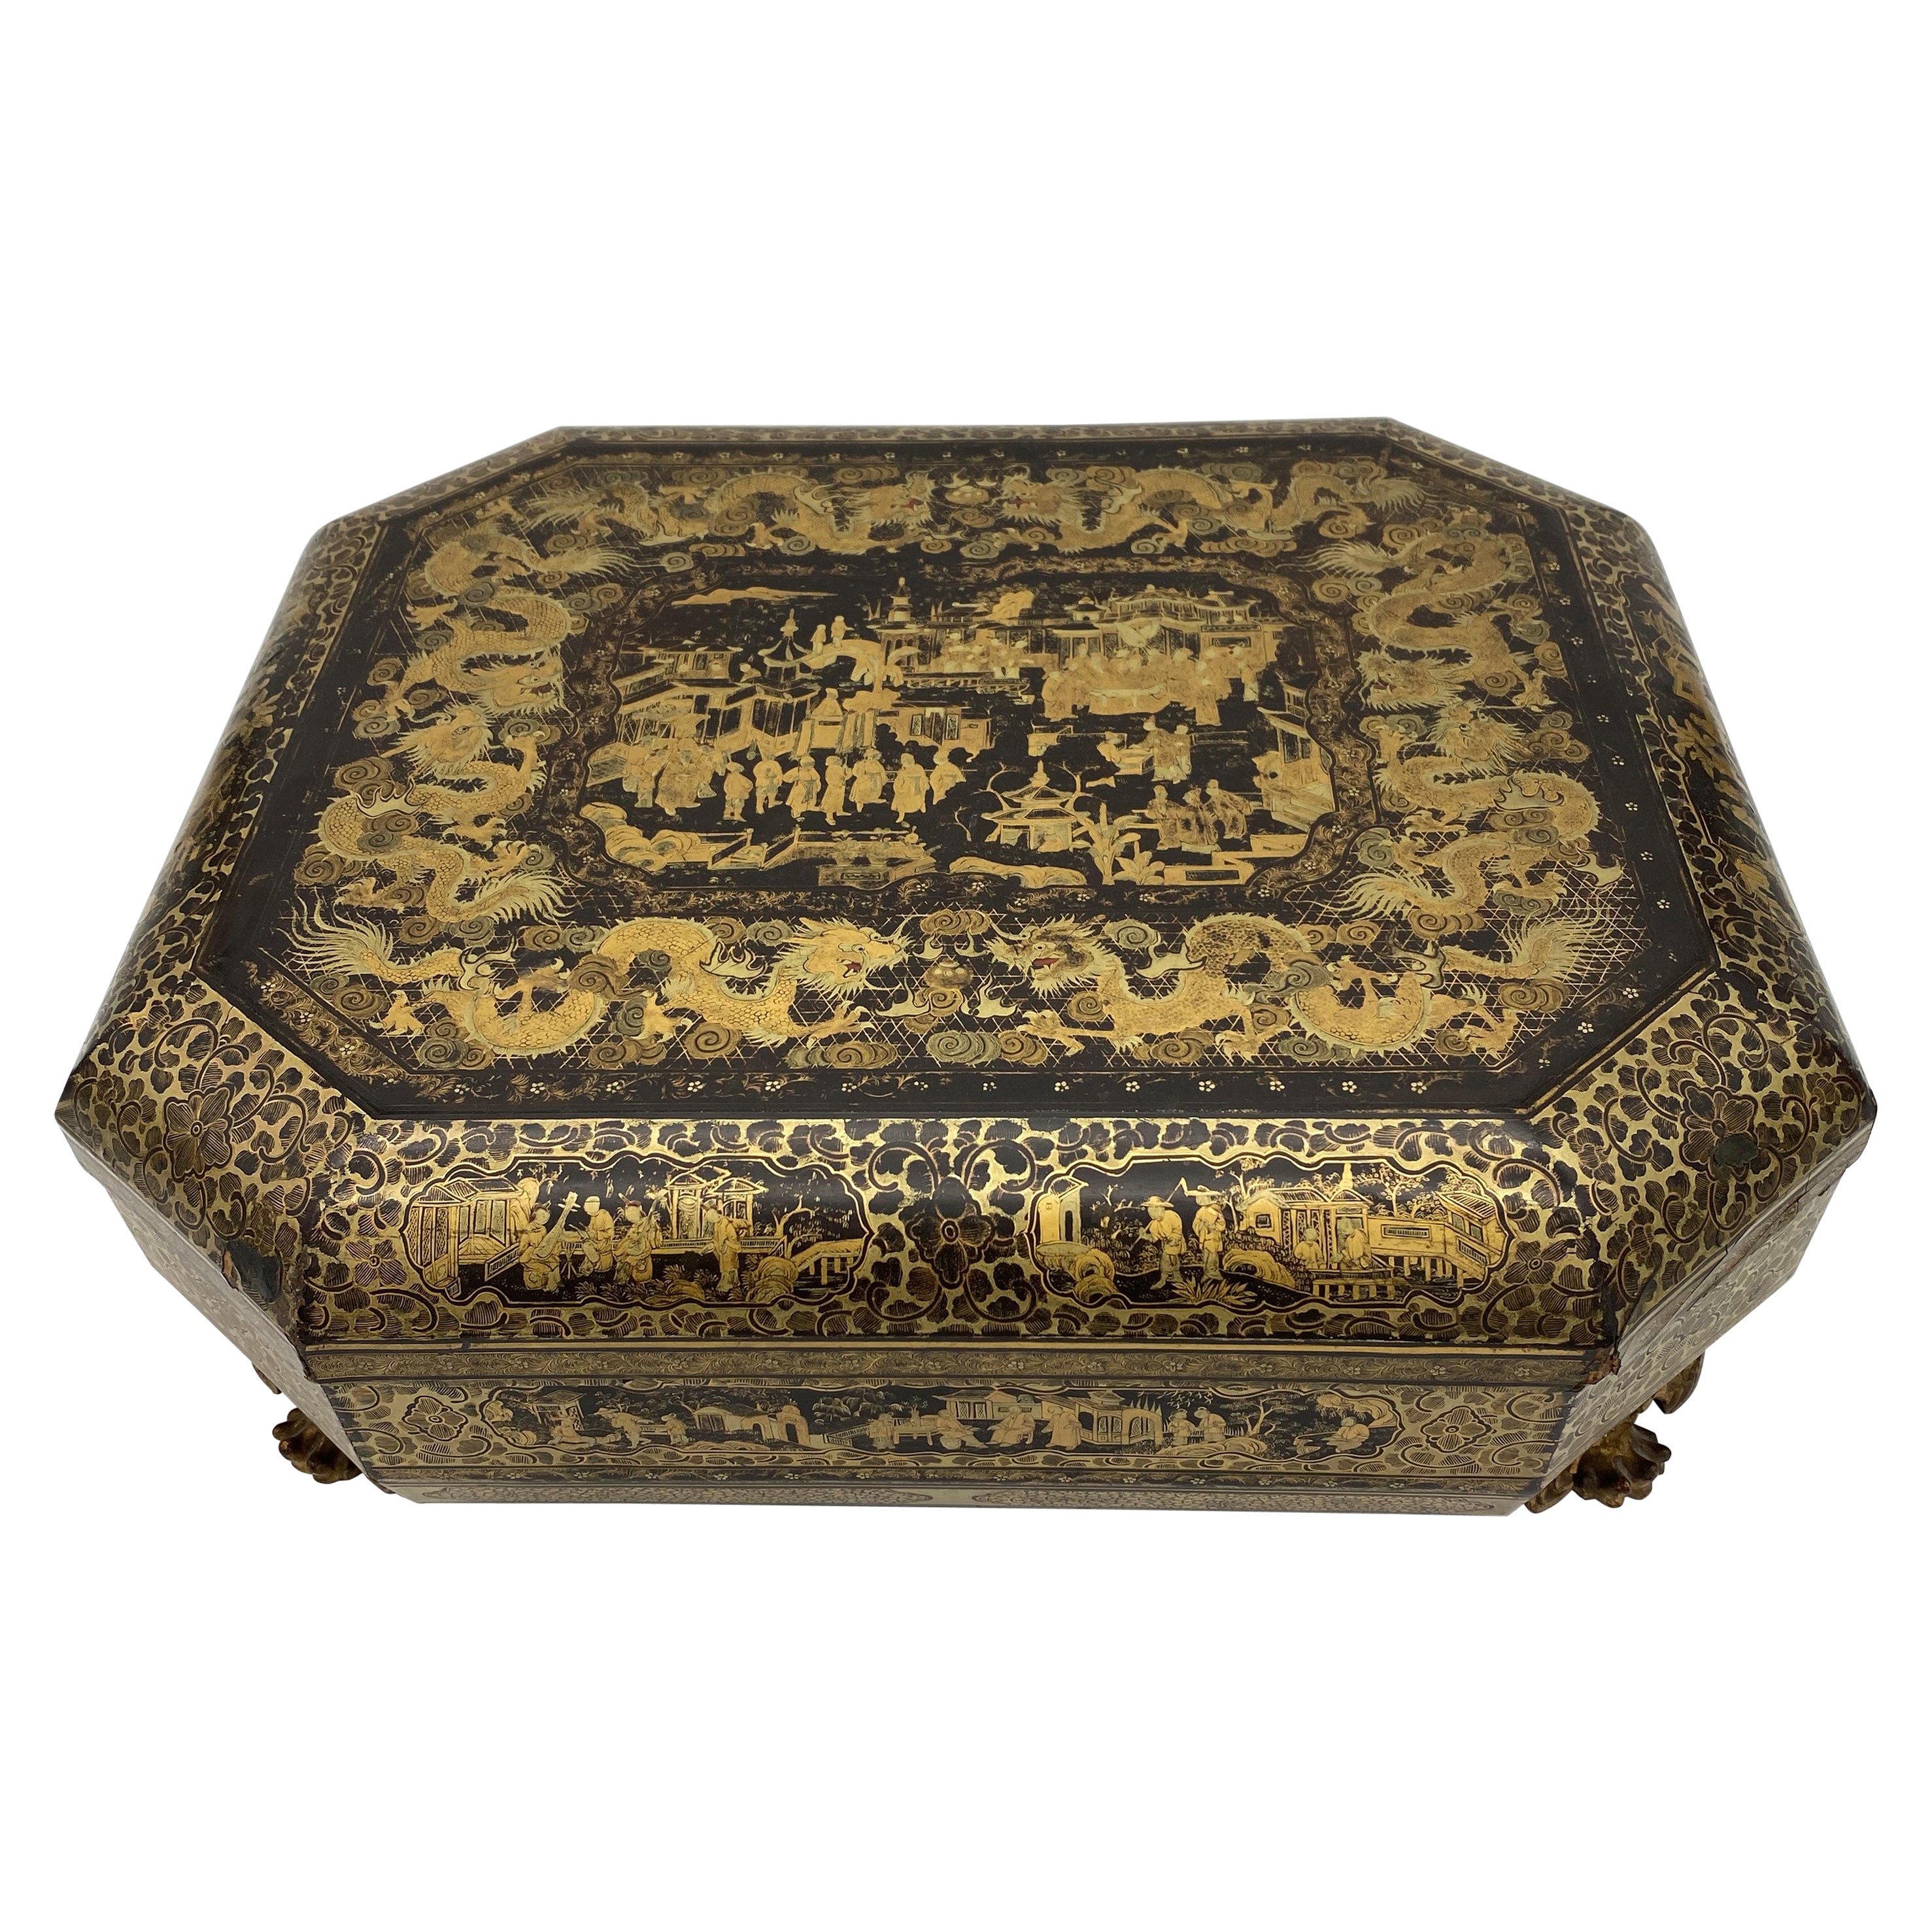 Antique 19th Century Export Chinese Lacquer Gaming Box